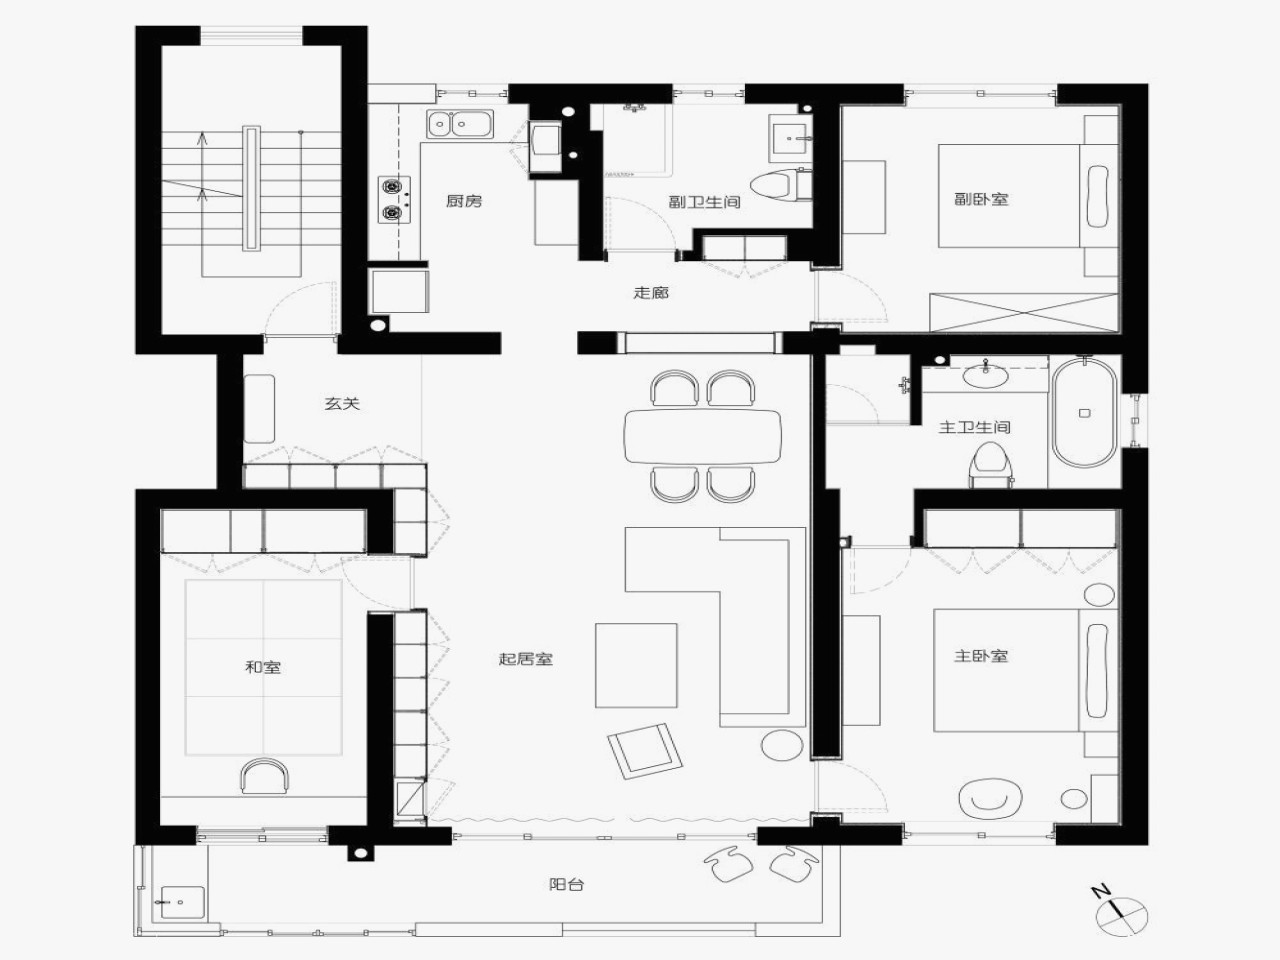 1280x960 ultra modern homes floor plans awesome ultra modern house plans